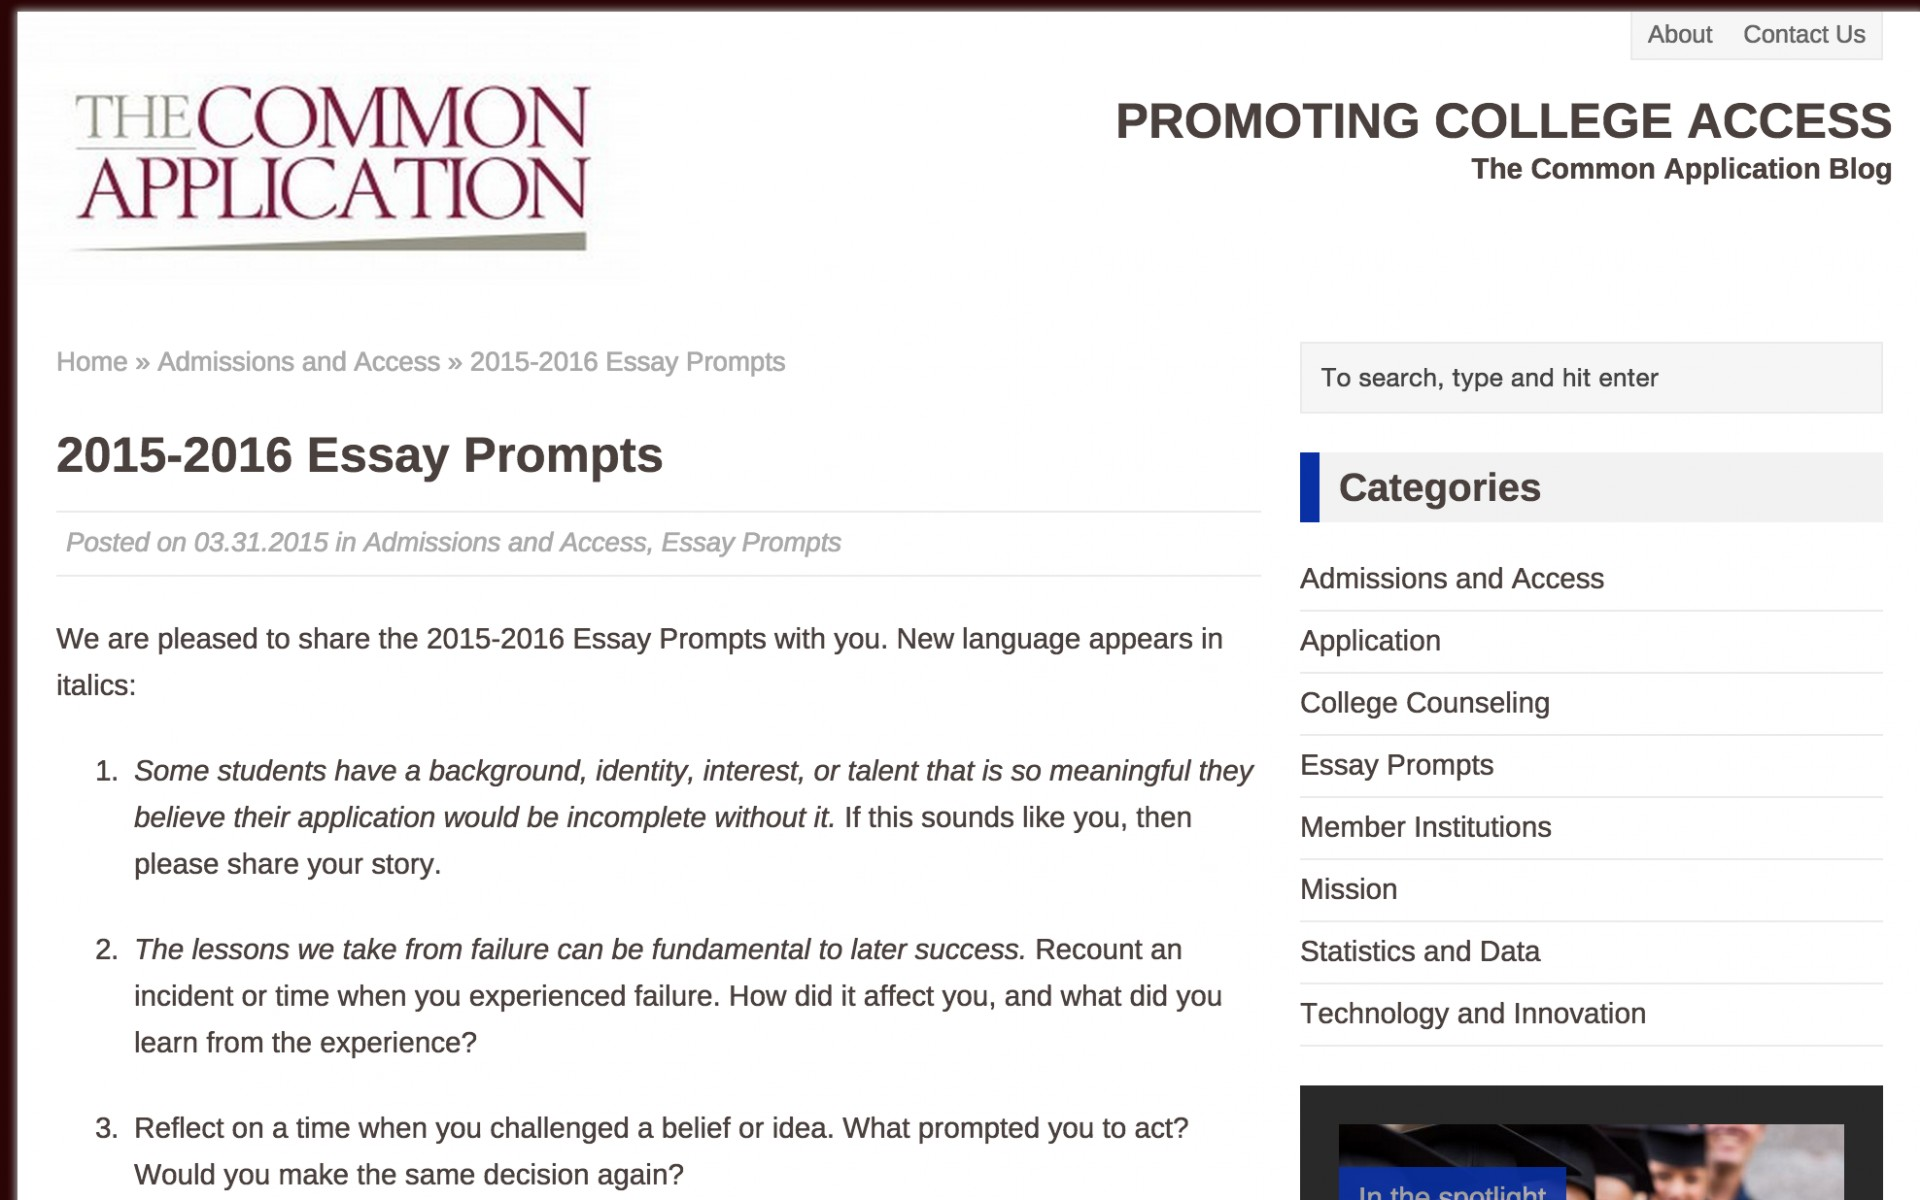 002 Common Essay Prompts Screen Shot At Pm Formidable App Examples Prompt 4 Scholarship 1920